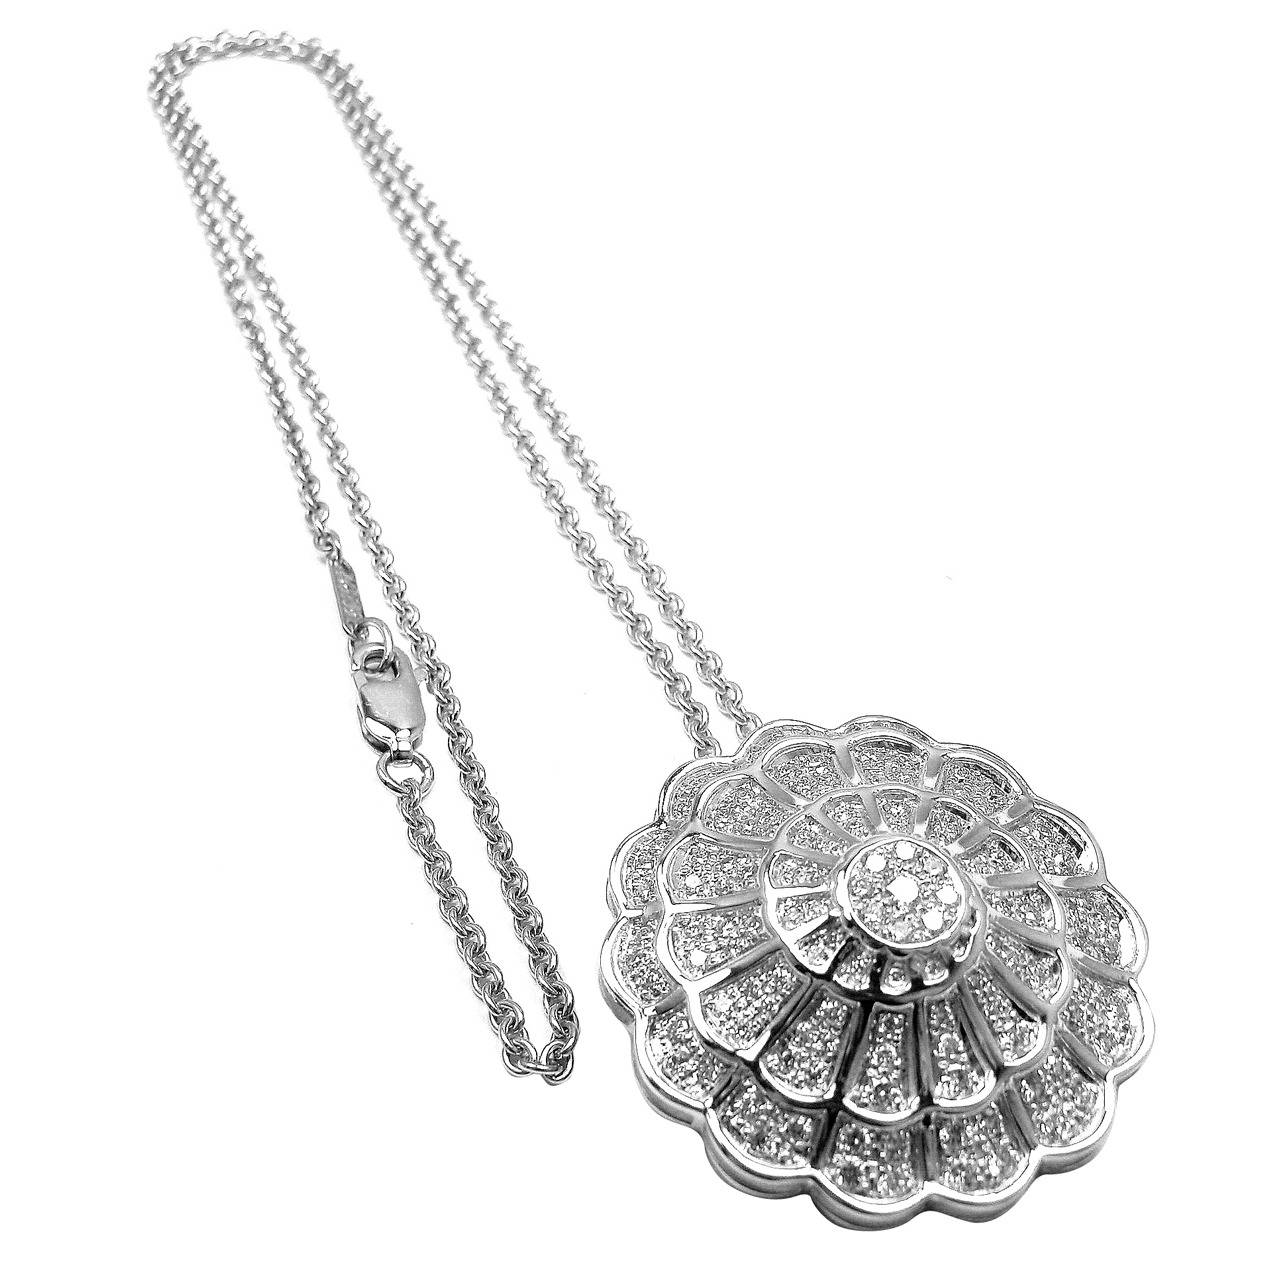 Get the Purity of White in your Adornment by buying a White Gold Necklace